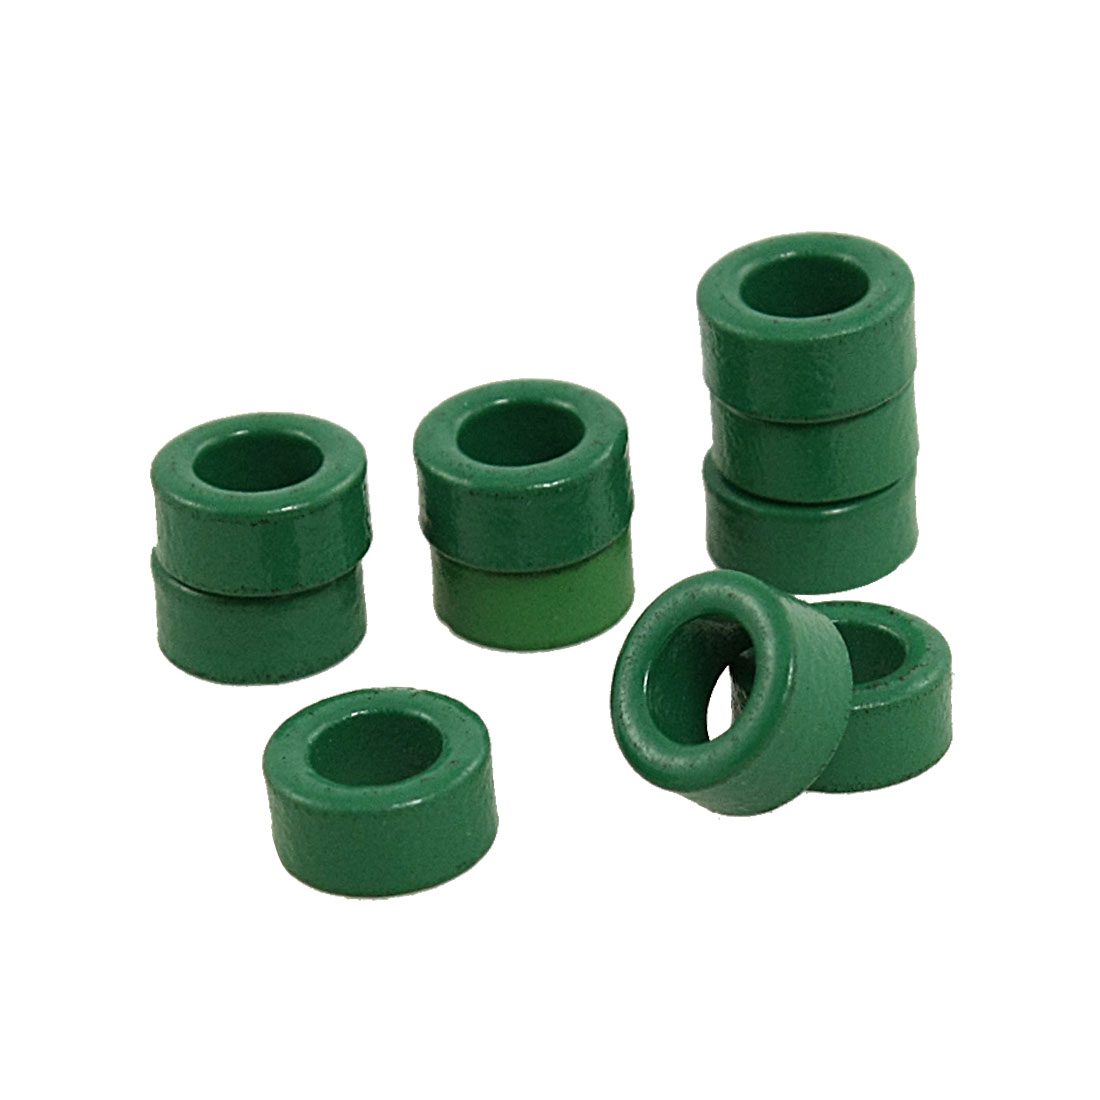 UXCELL Hot Sale 10 Pcs/lot 10Mm X 6Mm X 5Mm Inductor Coils Toroid Ferrite Cores Green High Quality transformers ferrite toroid cores green 74mm x 39mm x 13mm